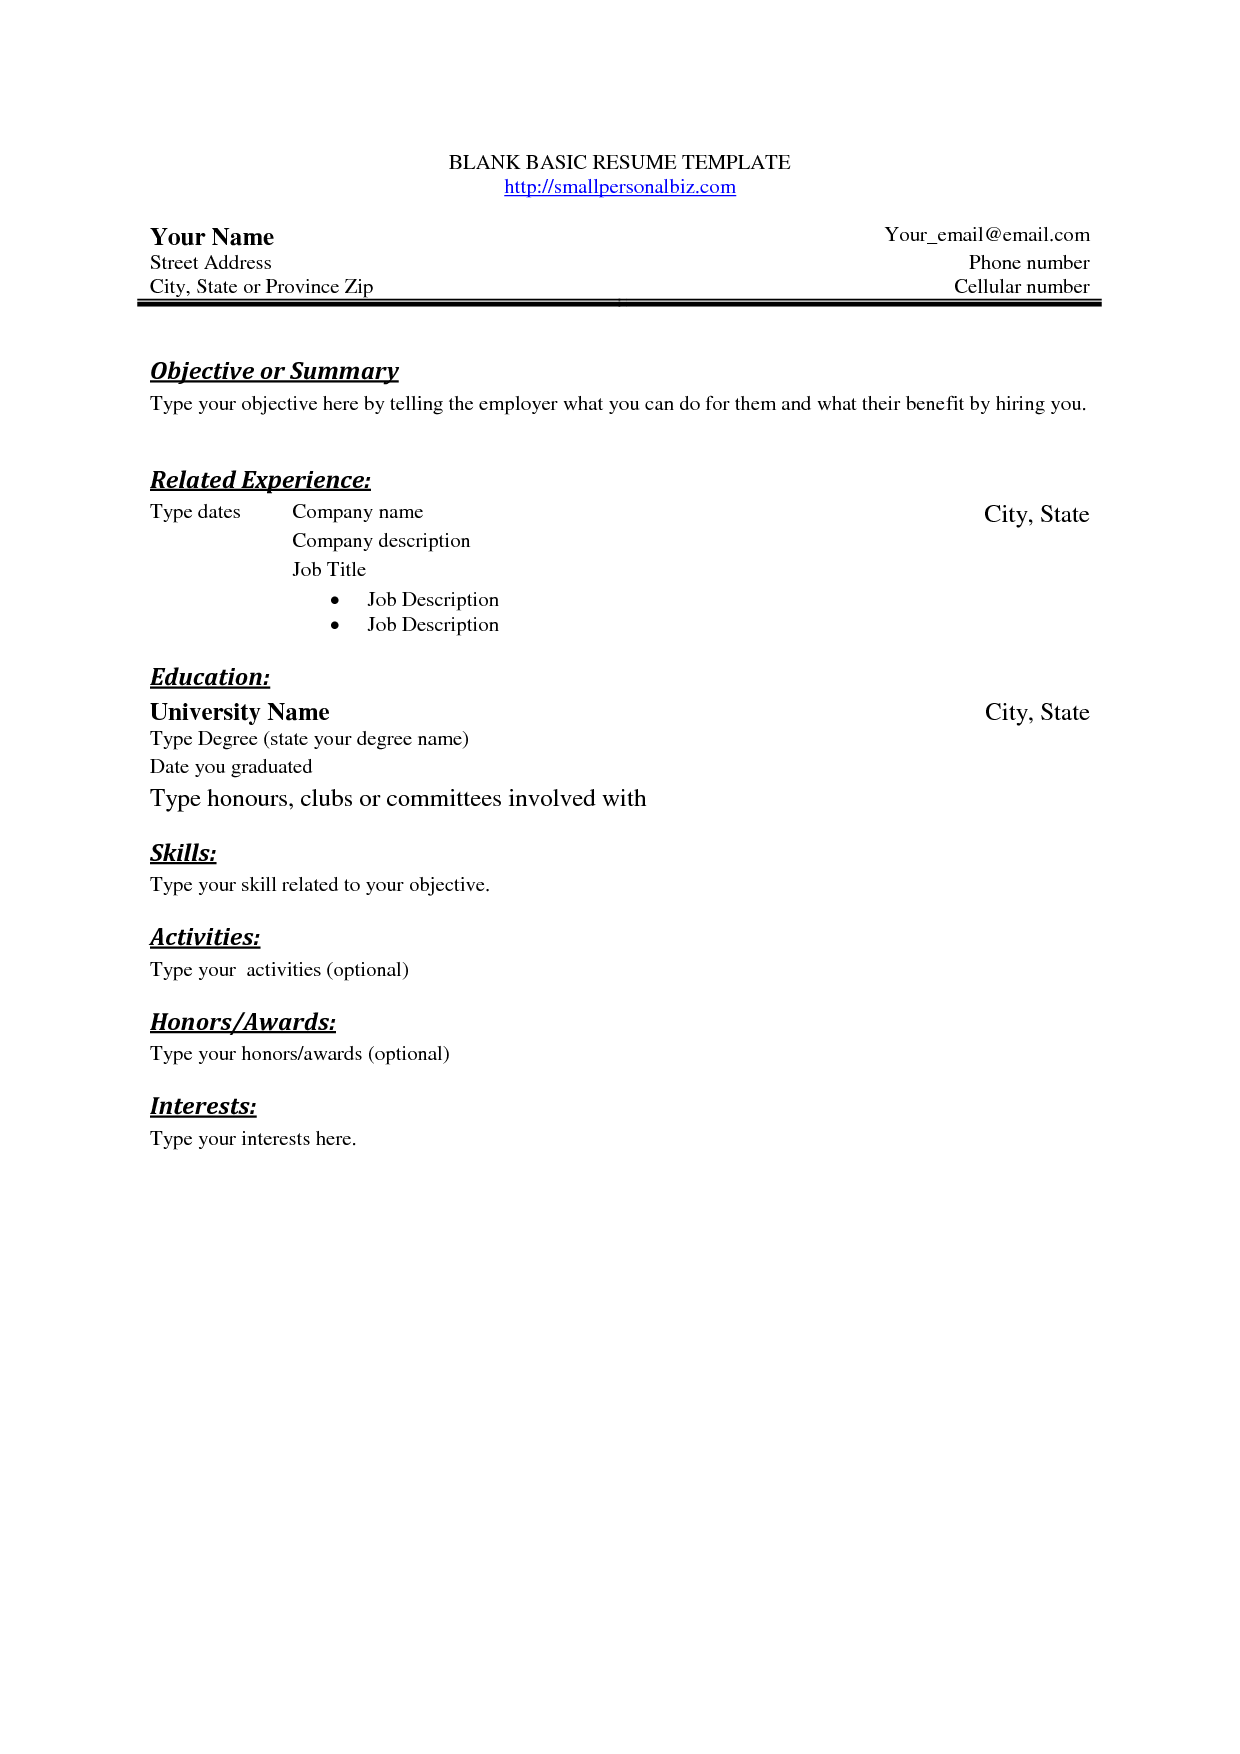 Superior Stylist And Luxury Simple Resume Layout 10 Free Basic Blank Resume Template    Resume Example Idea Short Resume Examples